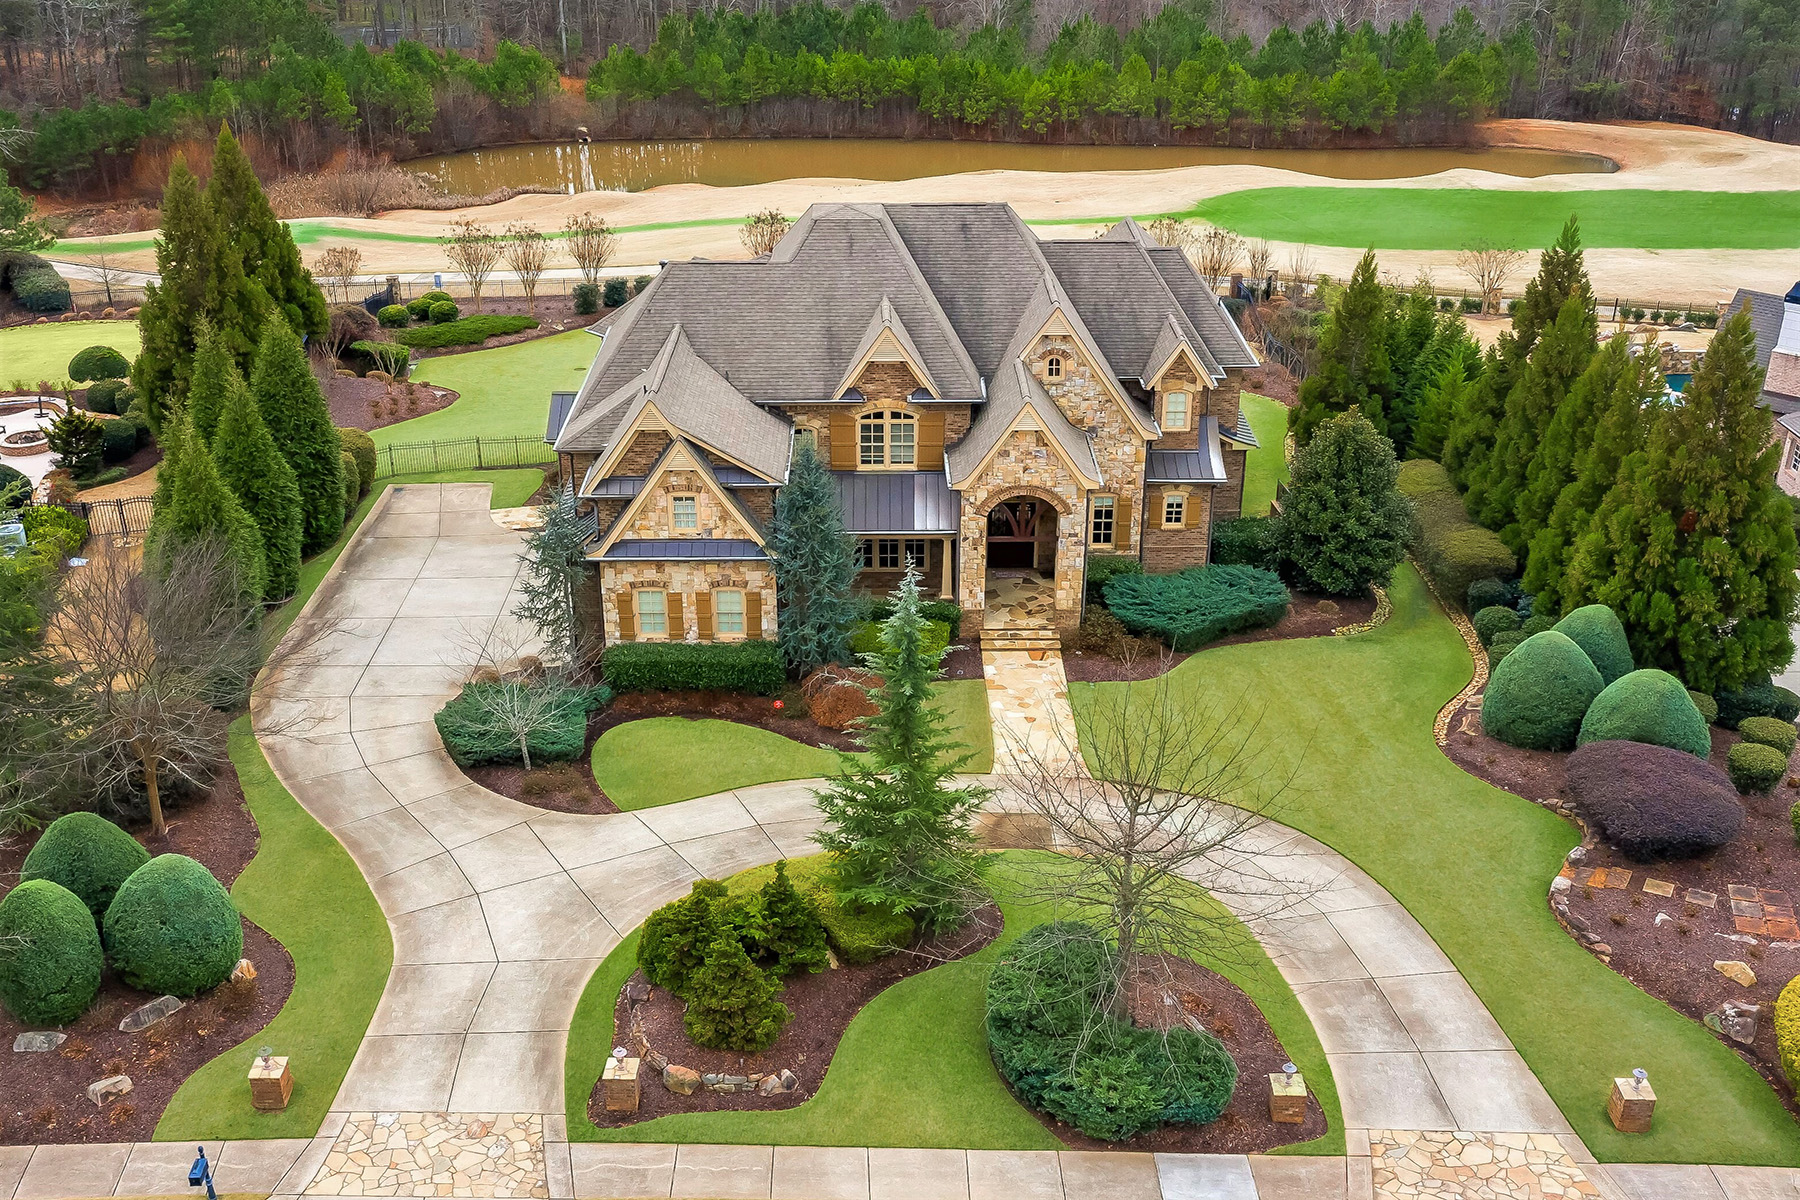 Single Family Homes for Sale at Detailed Golf Lot Home In The Manor With Panoramic Fairway View 3107 Watsons Bend Milton, Georgia 30004 United States